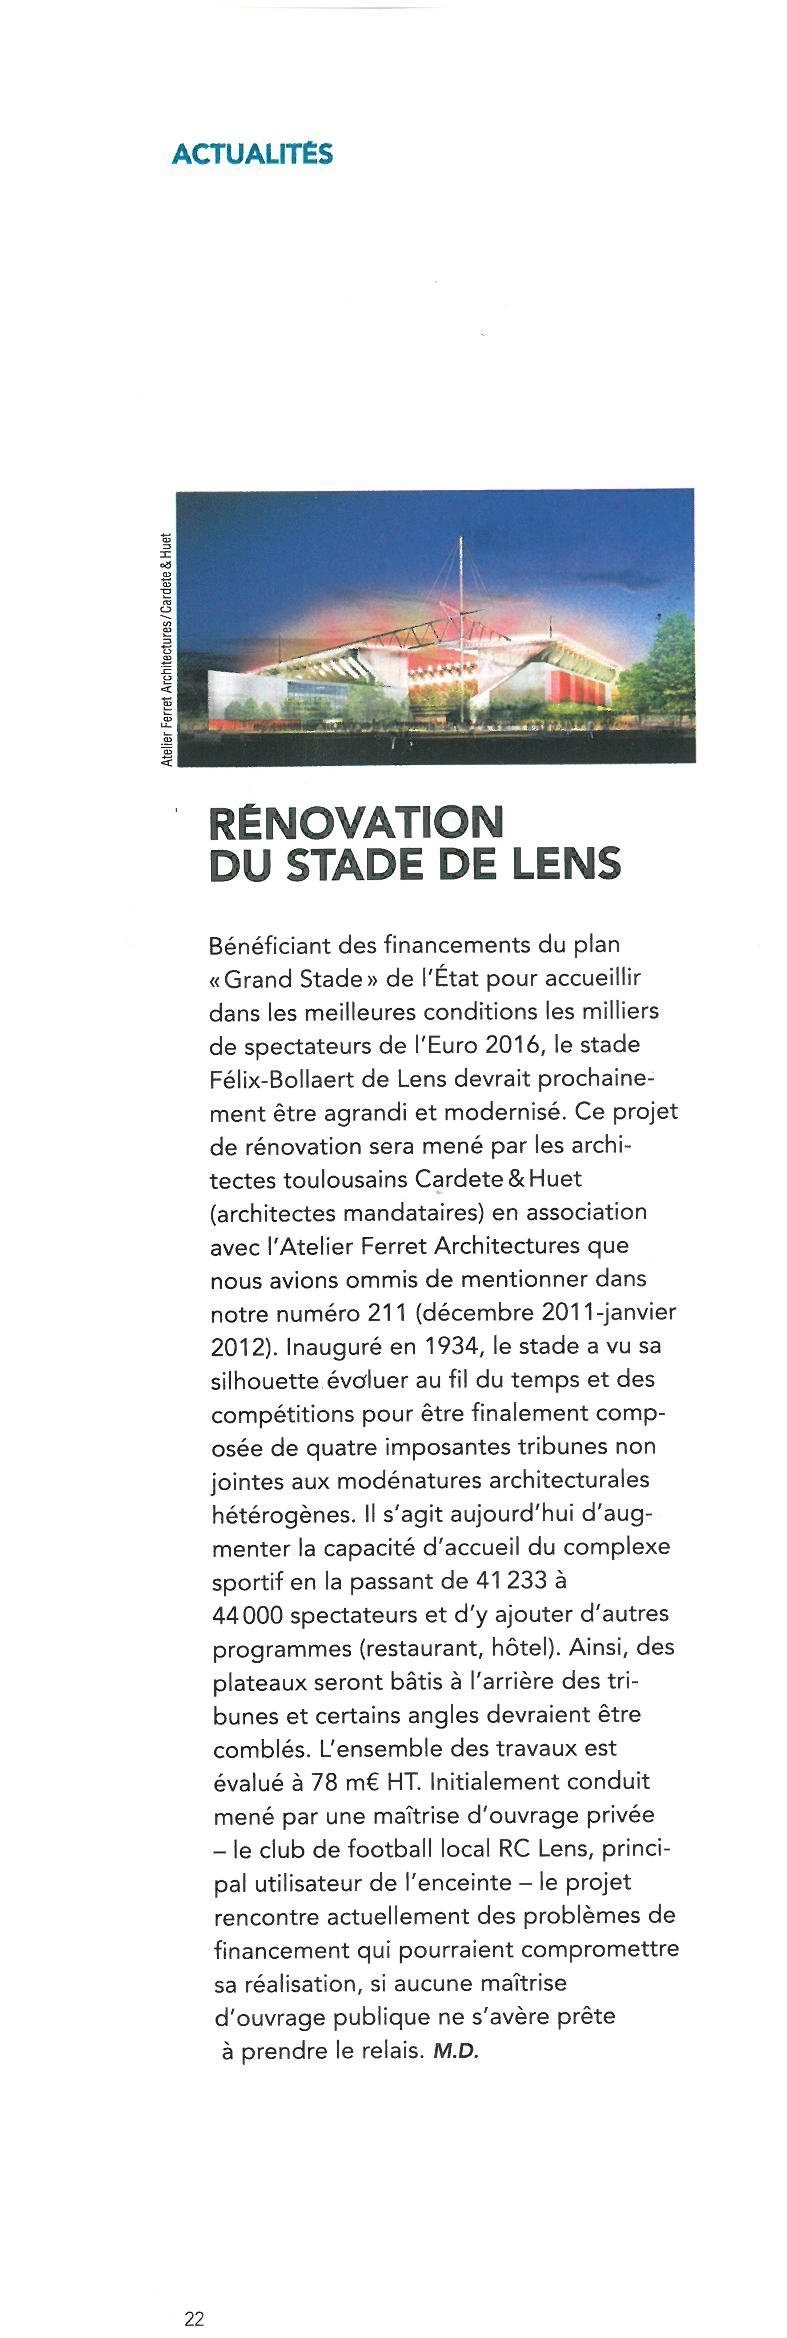 Rénovation du stade de Lens